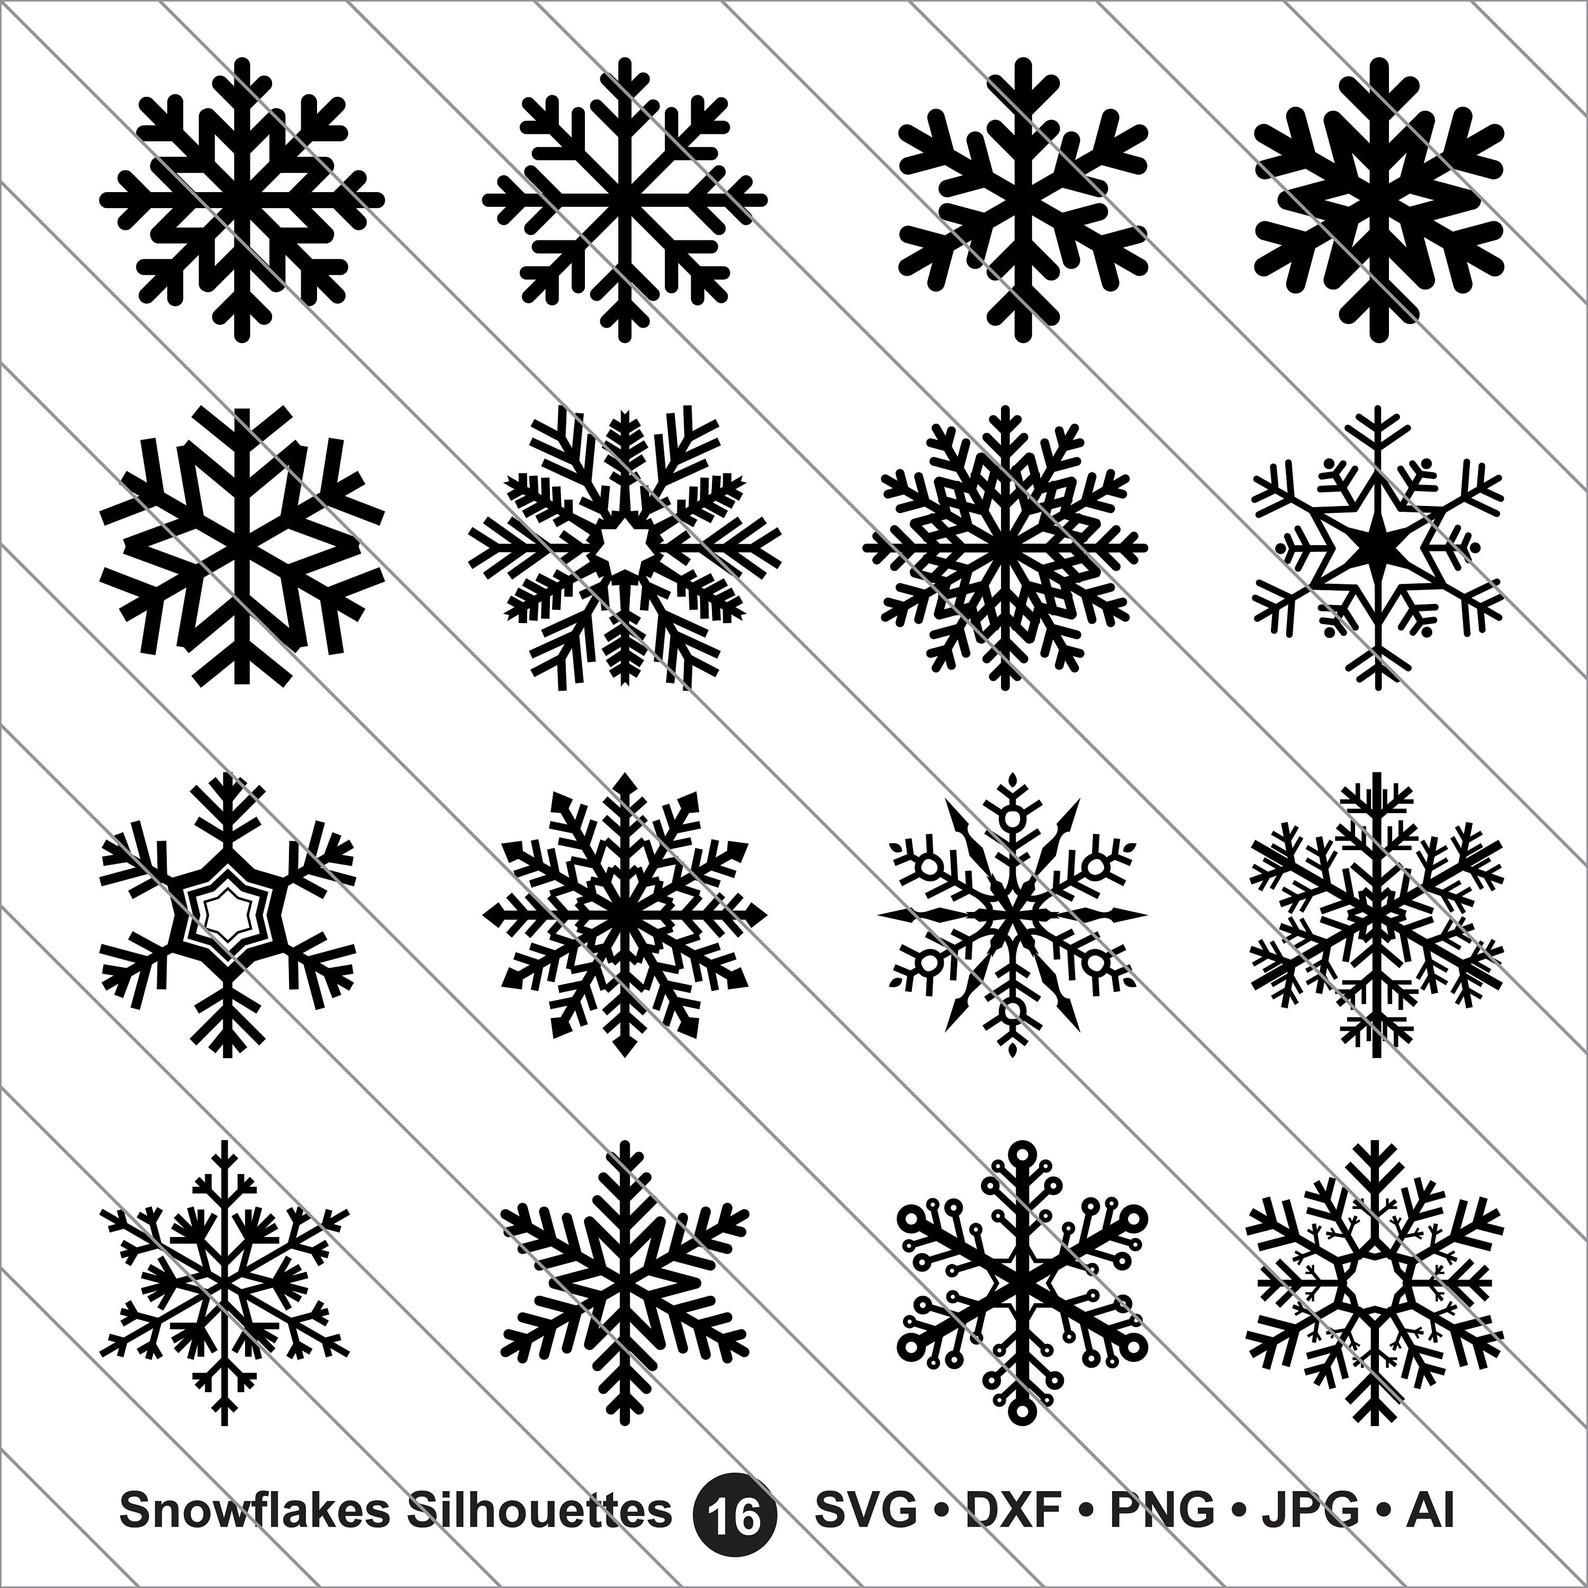 Snowflakes Silhouettes Svgsnowflakes Clipart Bundle Etsy In 2020 Snowflake Silhouette Snowflake Clipart Snowflake Images